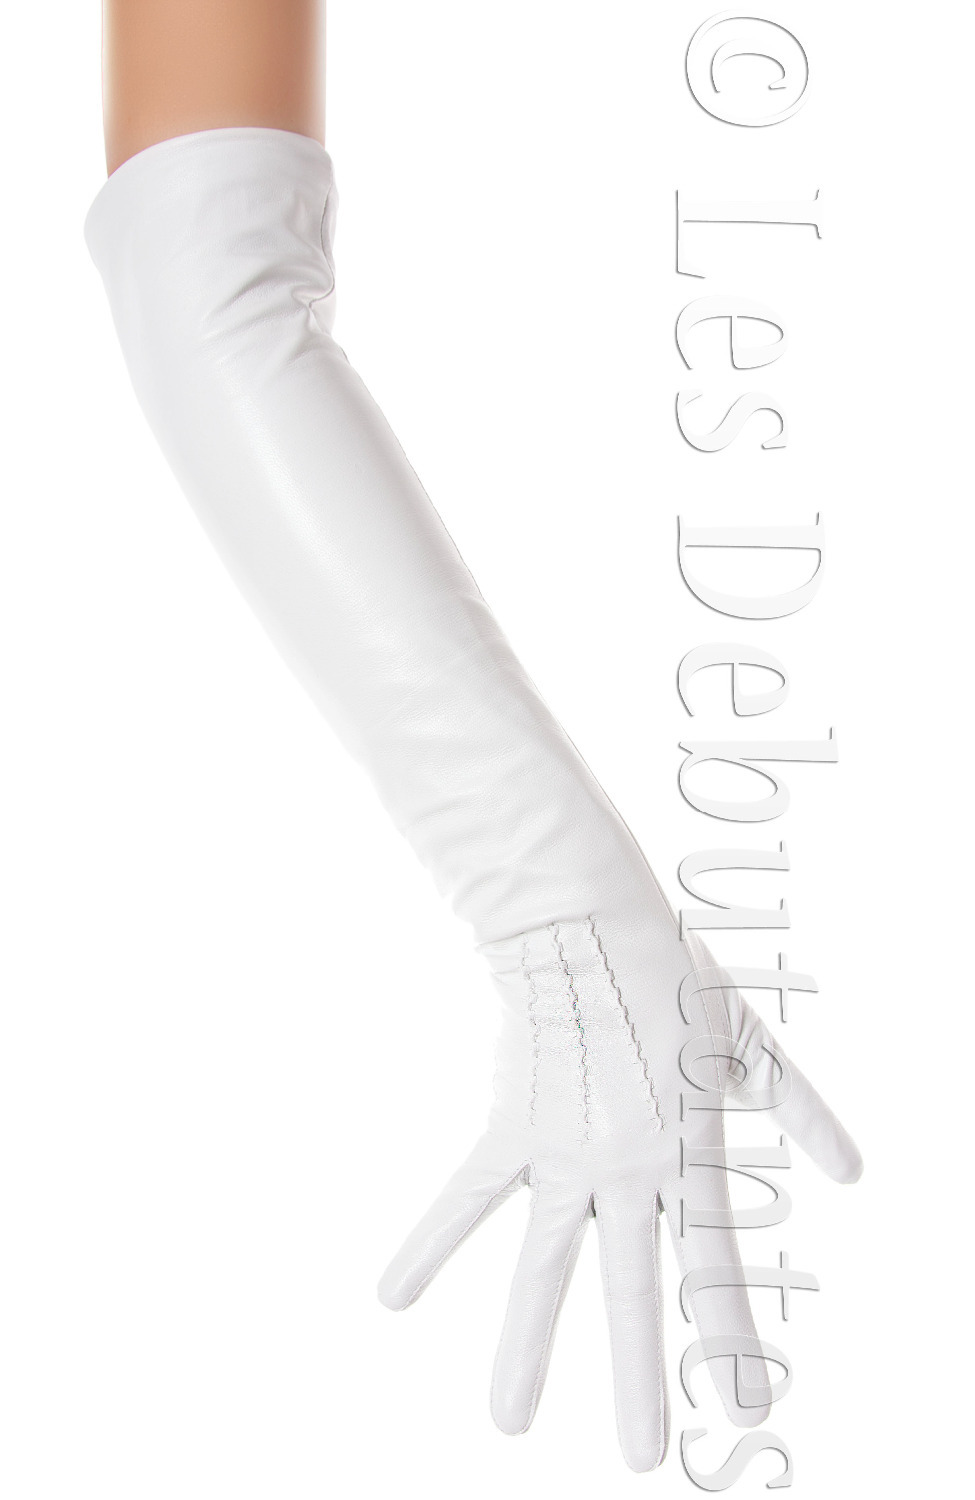 Ladies long vintage leather gloves - Aliexpress Com Buy Women S Long White Leather Opera Gloves Vintage Style From Reliable Wedding Hair And Makeup Suppliers On Online Store 120562